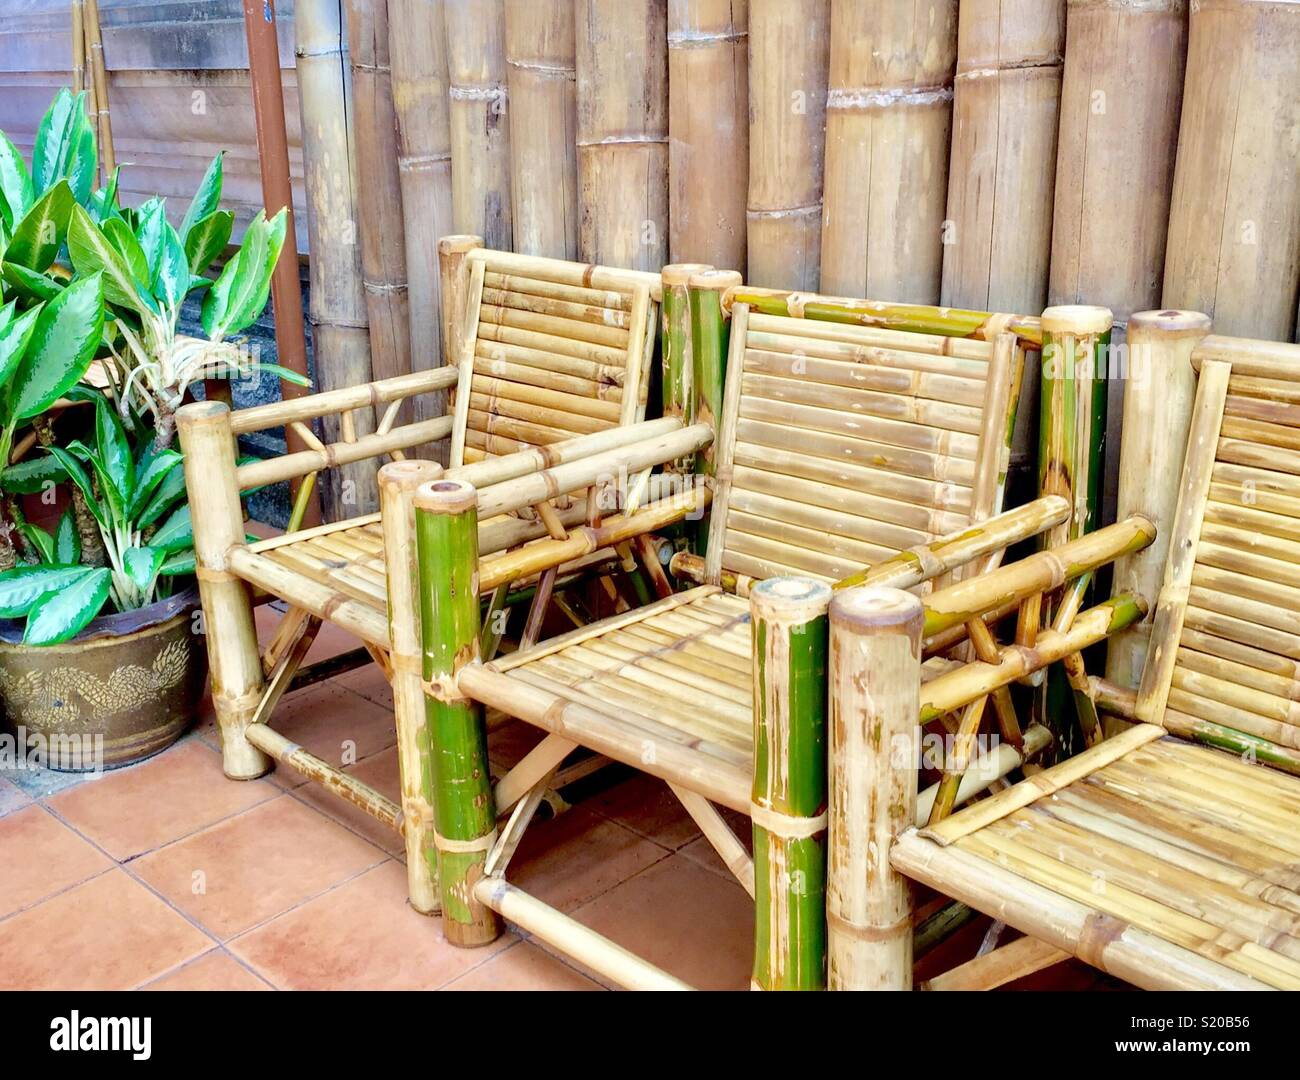 Bamboo Chairs Bamboo Chair Stock Photos Bamboo Chair Stock Images Alamy